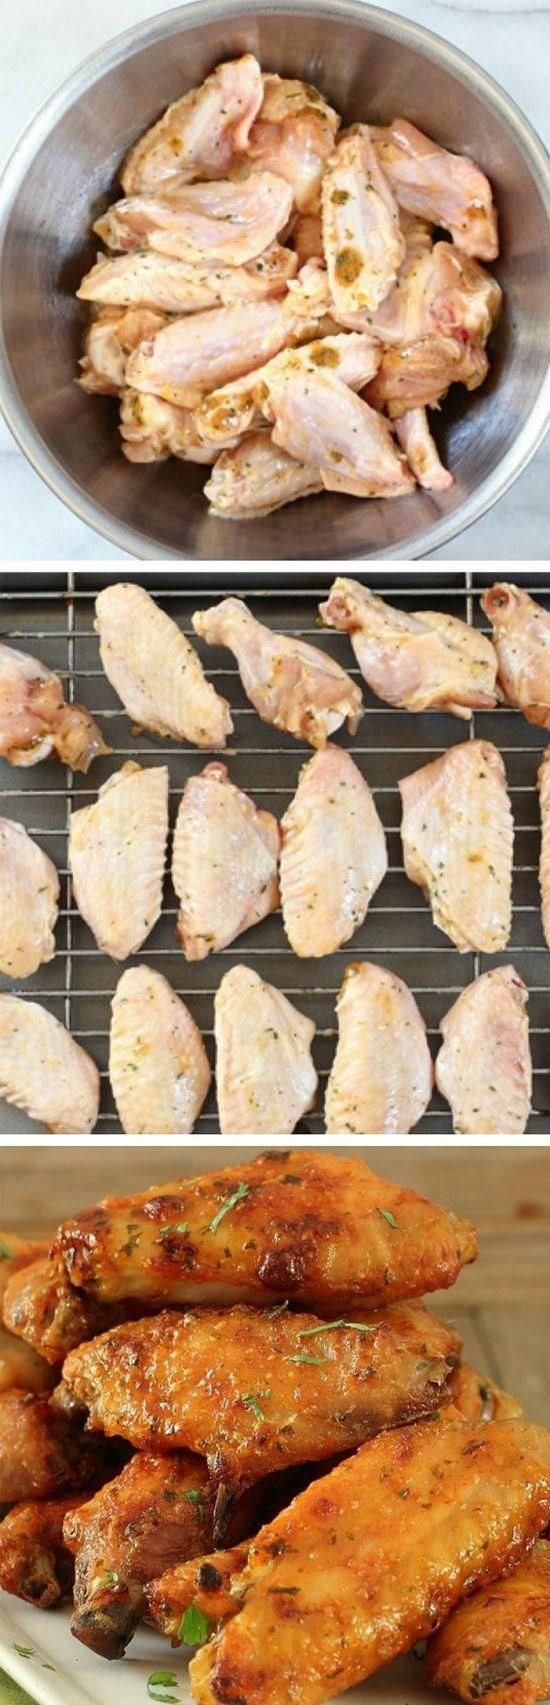 Incredibly Delicious Baked Chicken Wings - Love with recipe